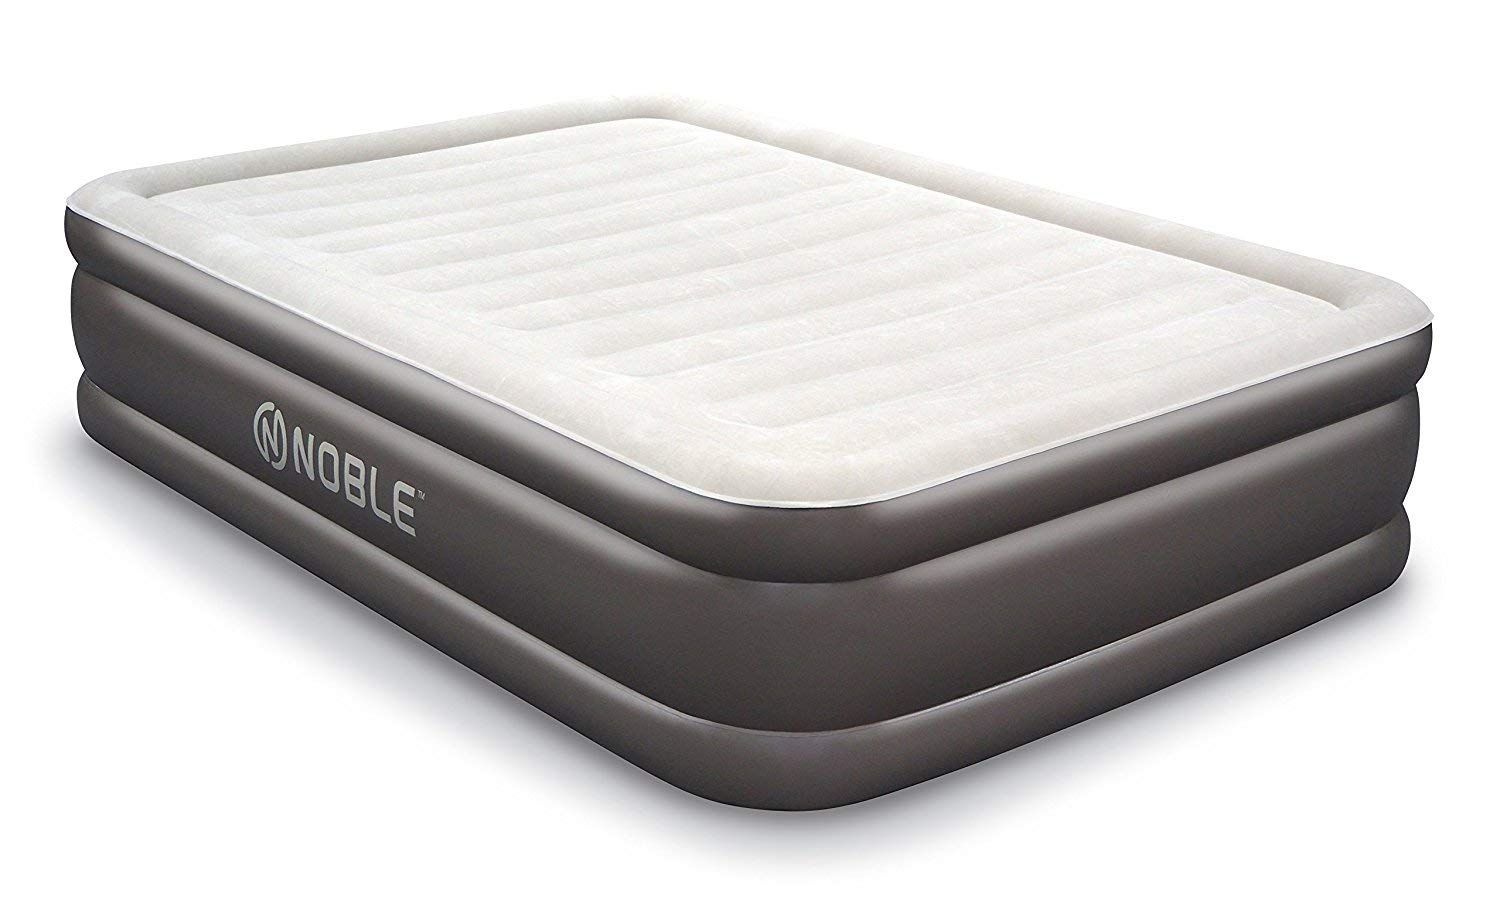 f5f6e247f68 Noble QUEEN SIZE Comfort DOUBLE HIGH Raised Air Mattress - Top Inflatable  Airbed with Built-in Pump - Elevated Raised Air Mattress Quilt Top   1-year  ...